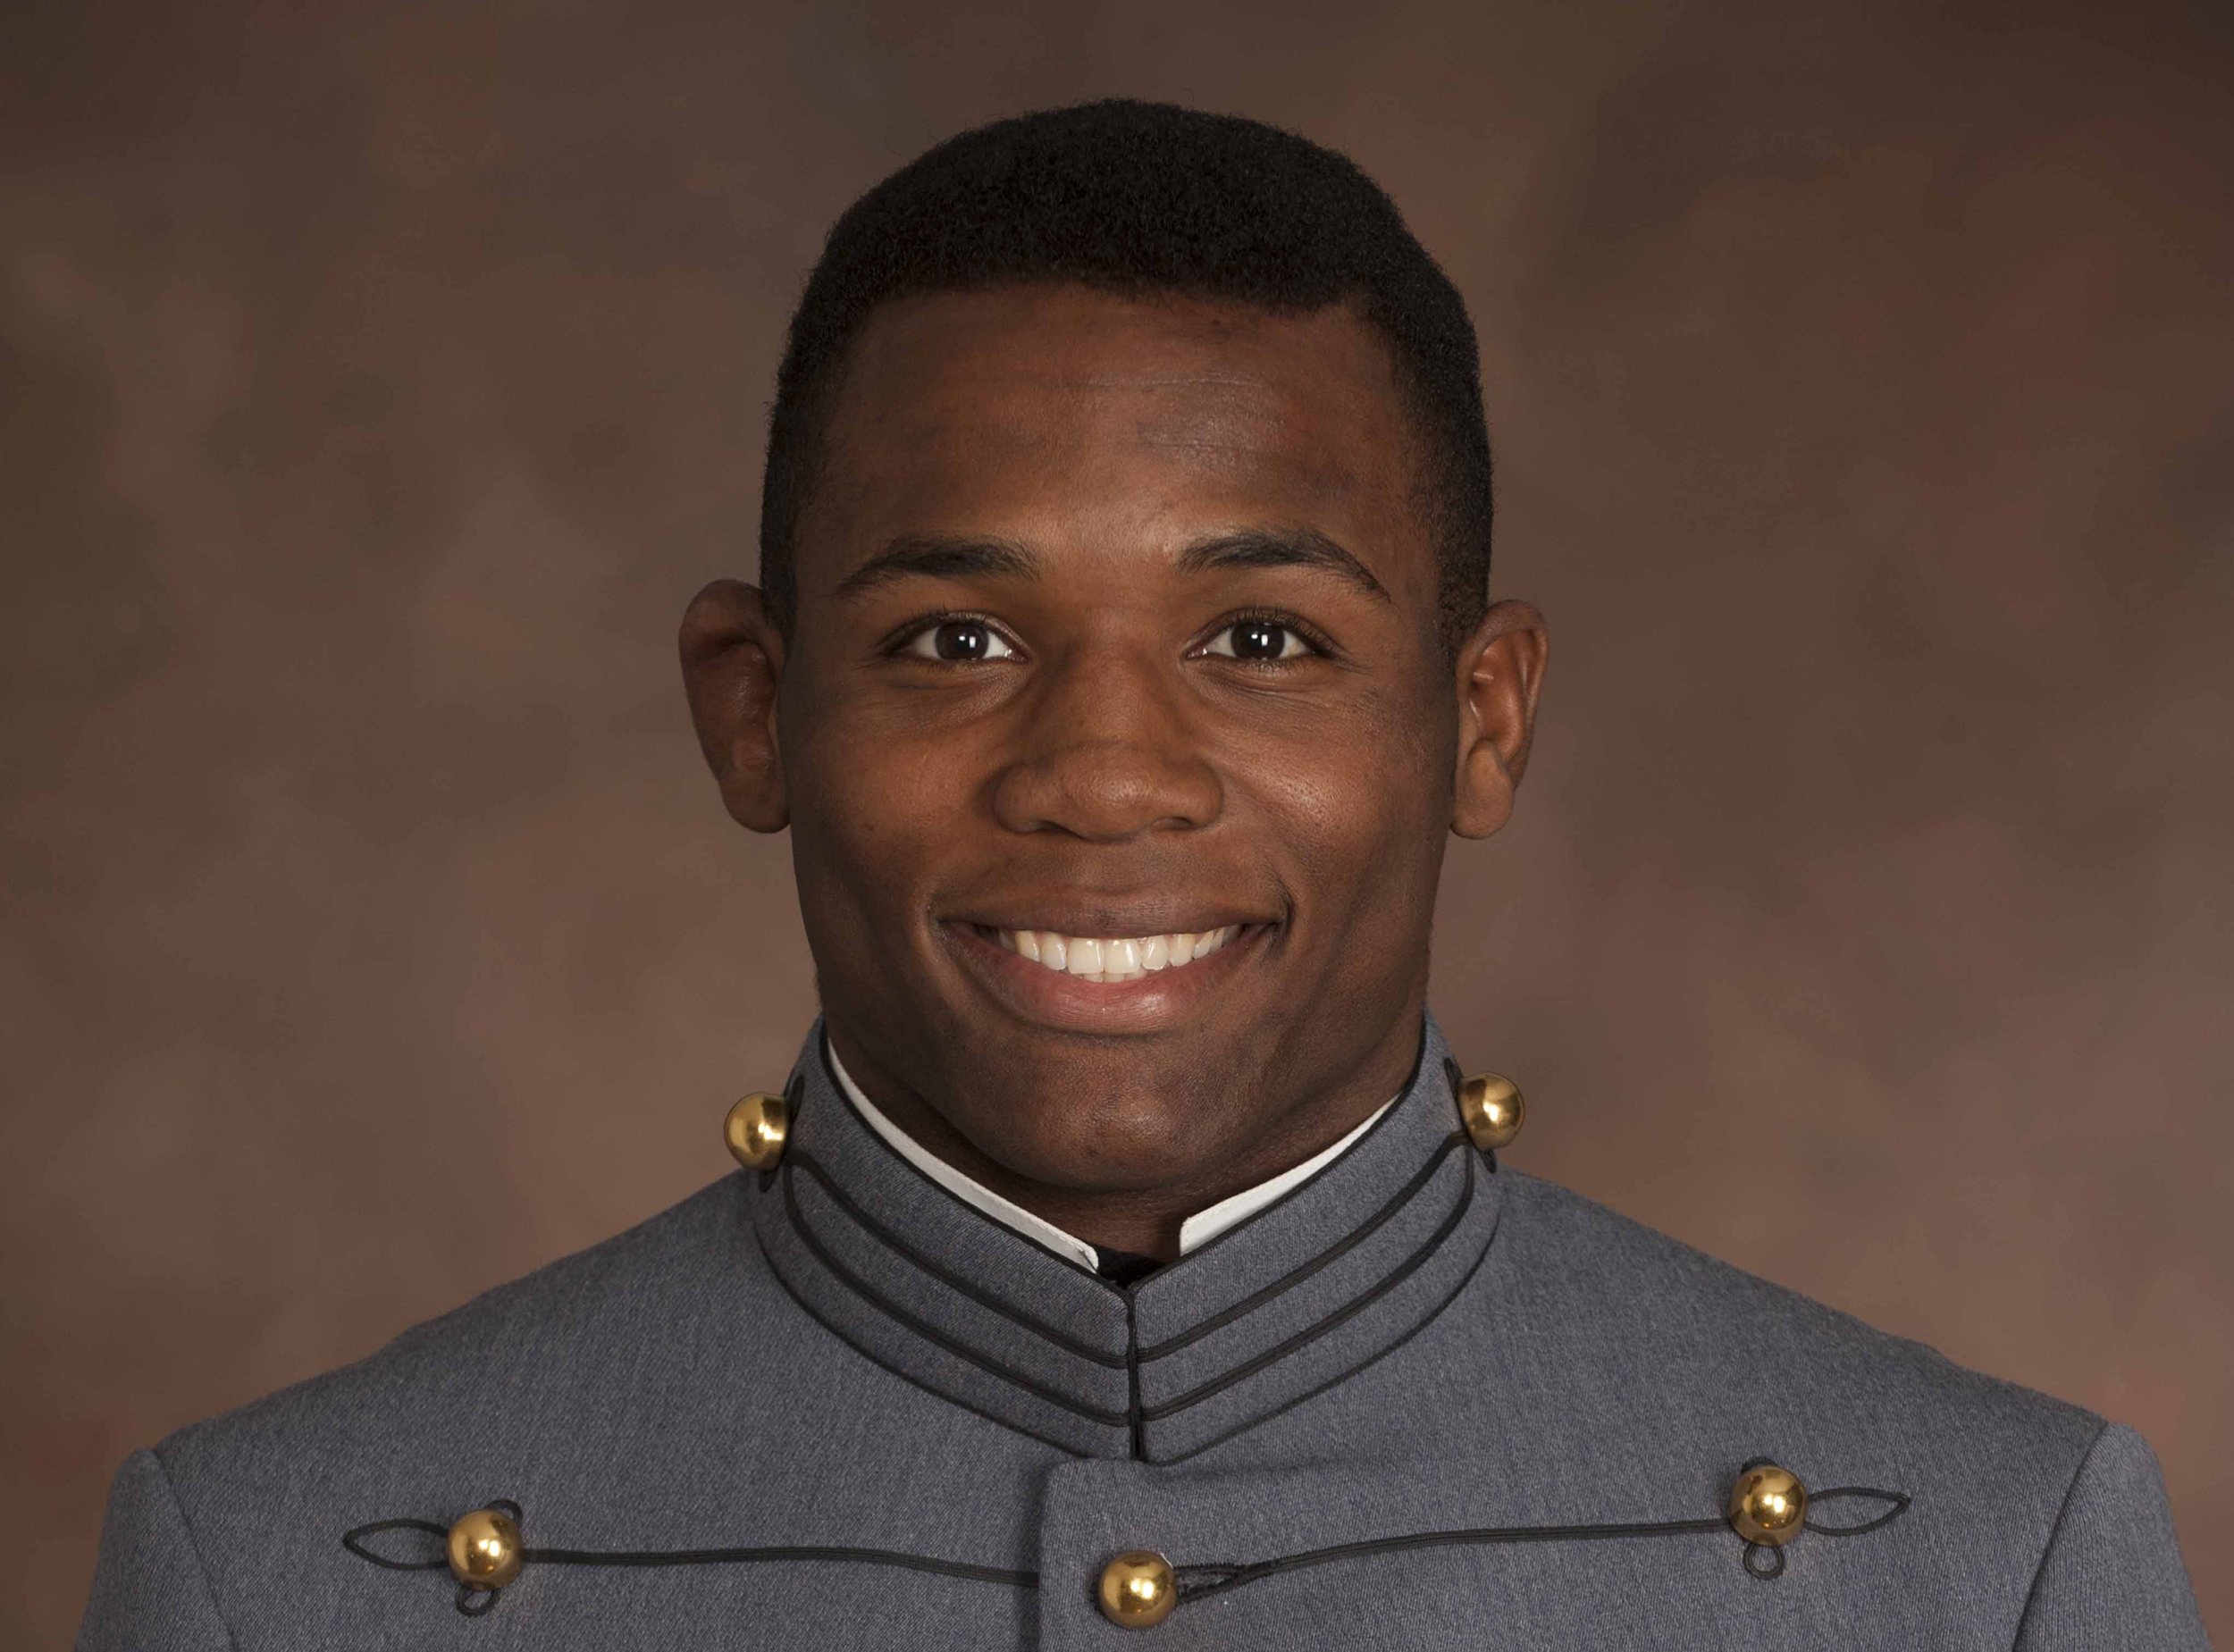 Army sergeant charged in West Point crash that killed cadet